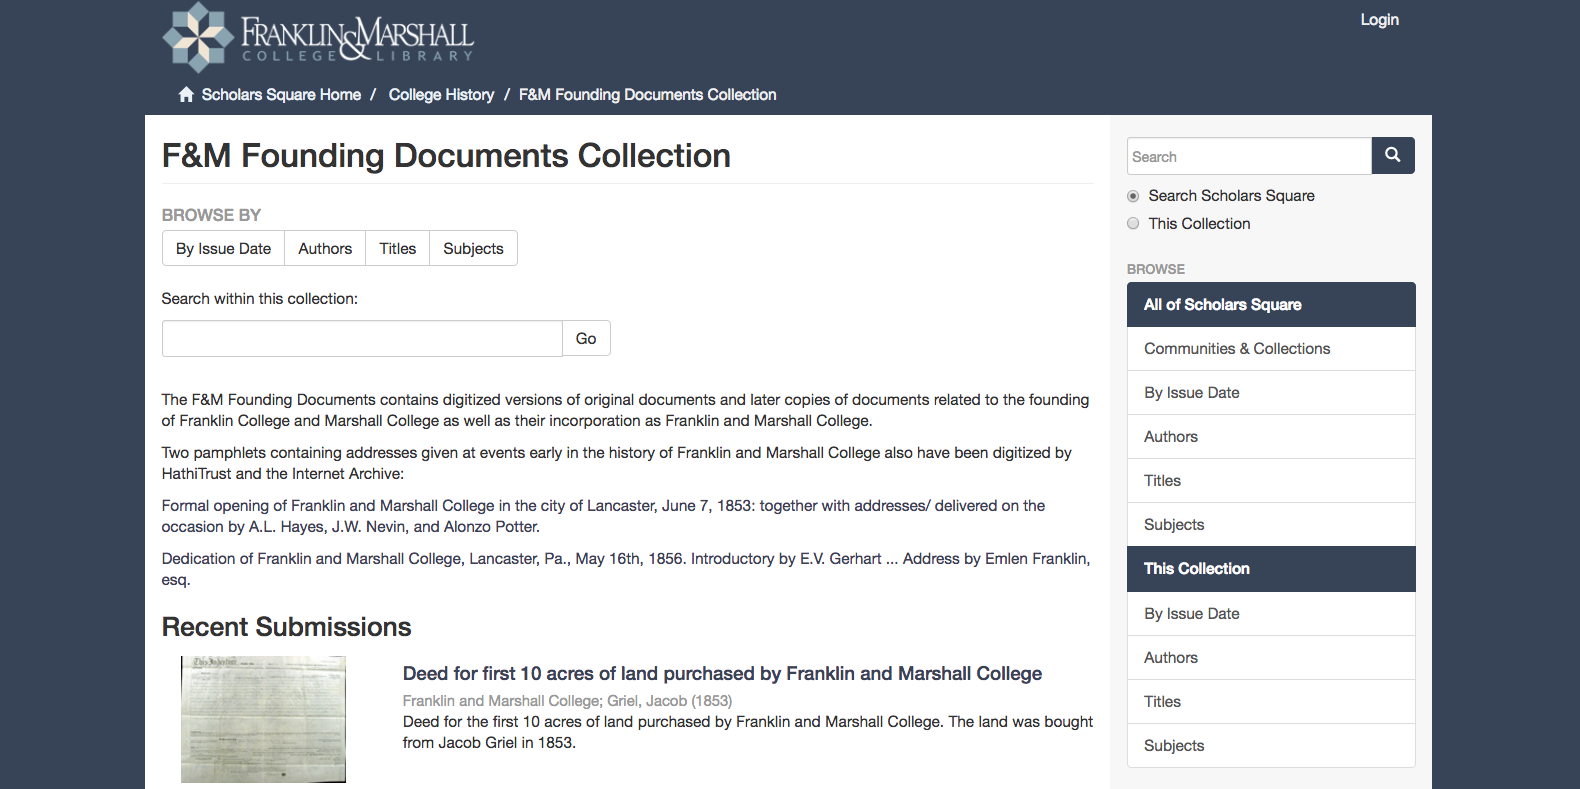 Screen shot of the F&M Founding Documents Collection homepage showing the browse options and search bar